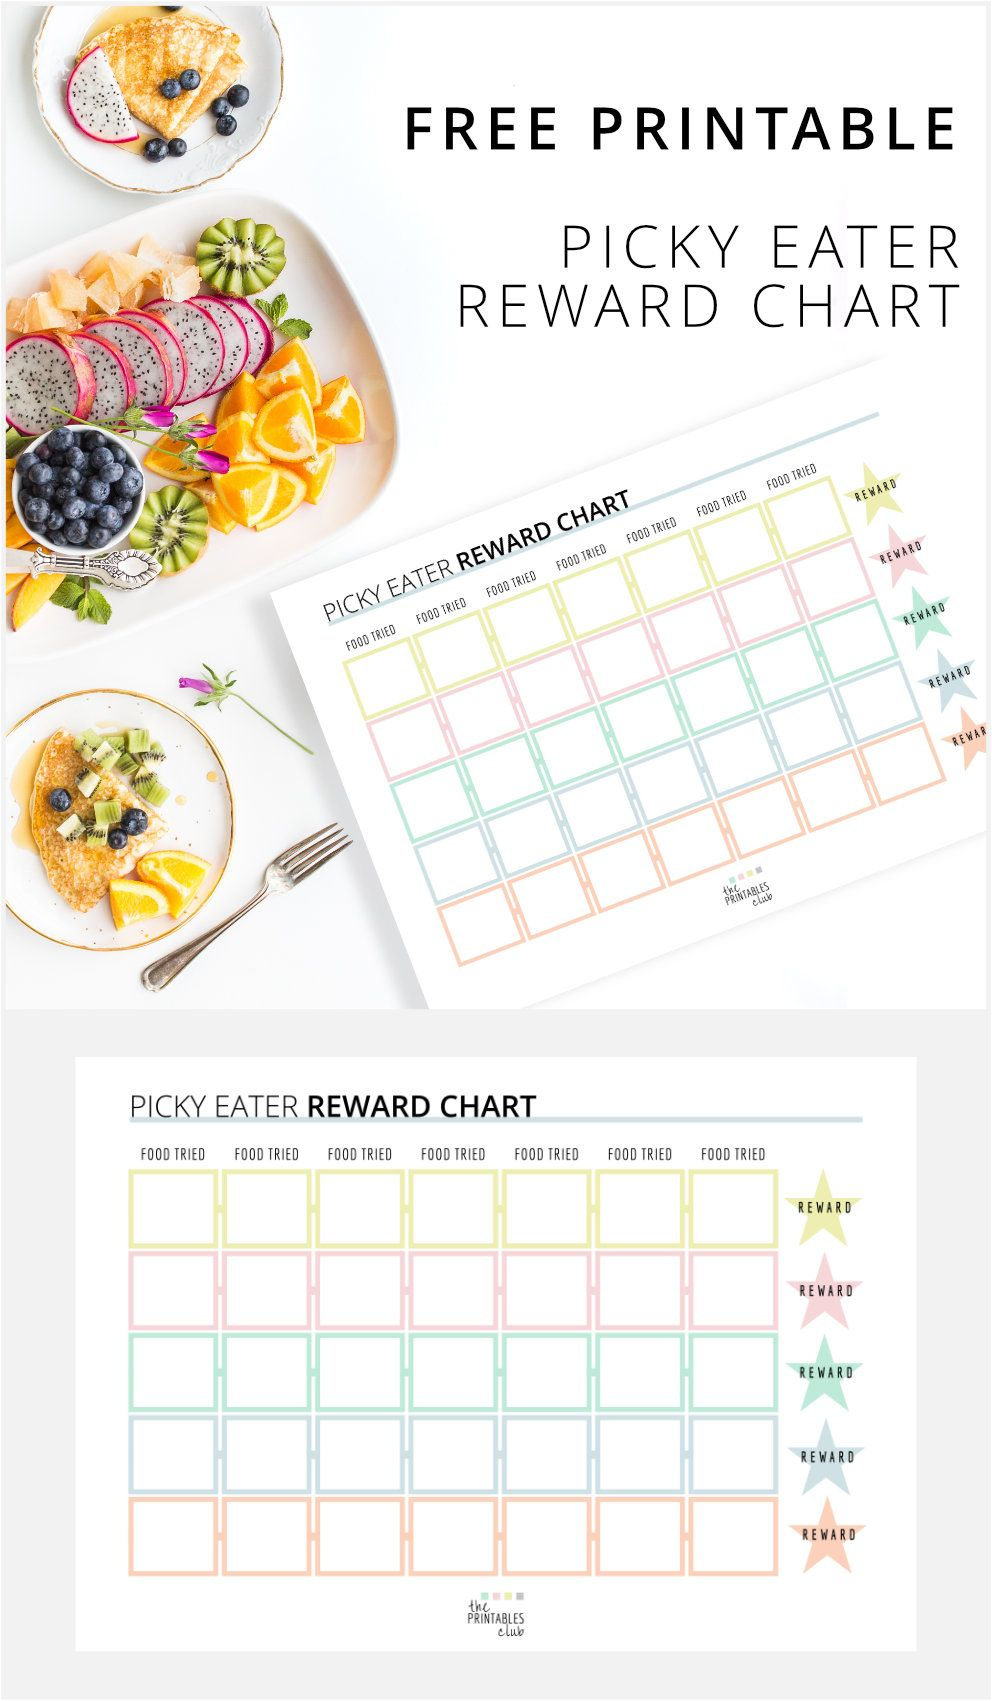 Free Printable Picky Eater Reward Chart The Printables Club Picky Eaters Kids Food Charts Picky Eaters